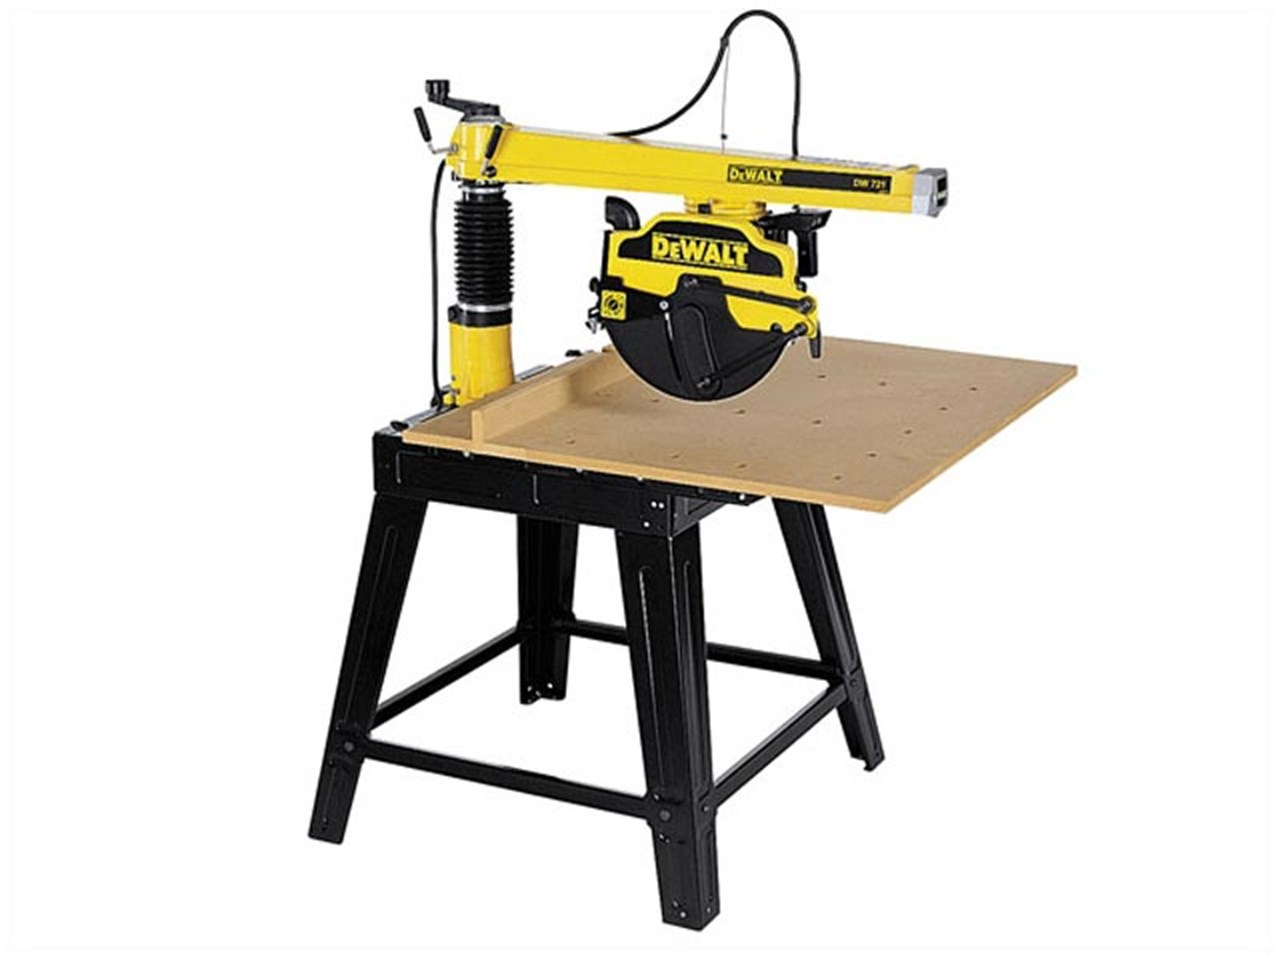 dewalt dw721kn 240v 2000w 300mm radial arm saw. Black Bedroom Furniture Sets. Home Design Ideas